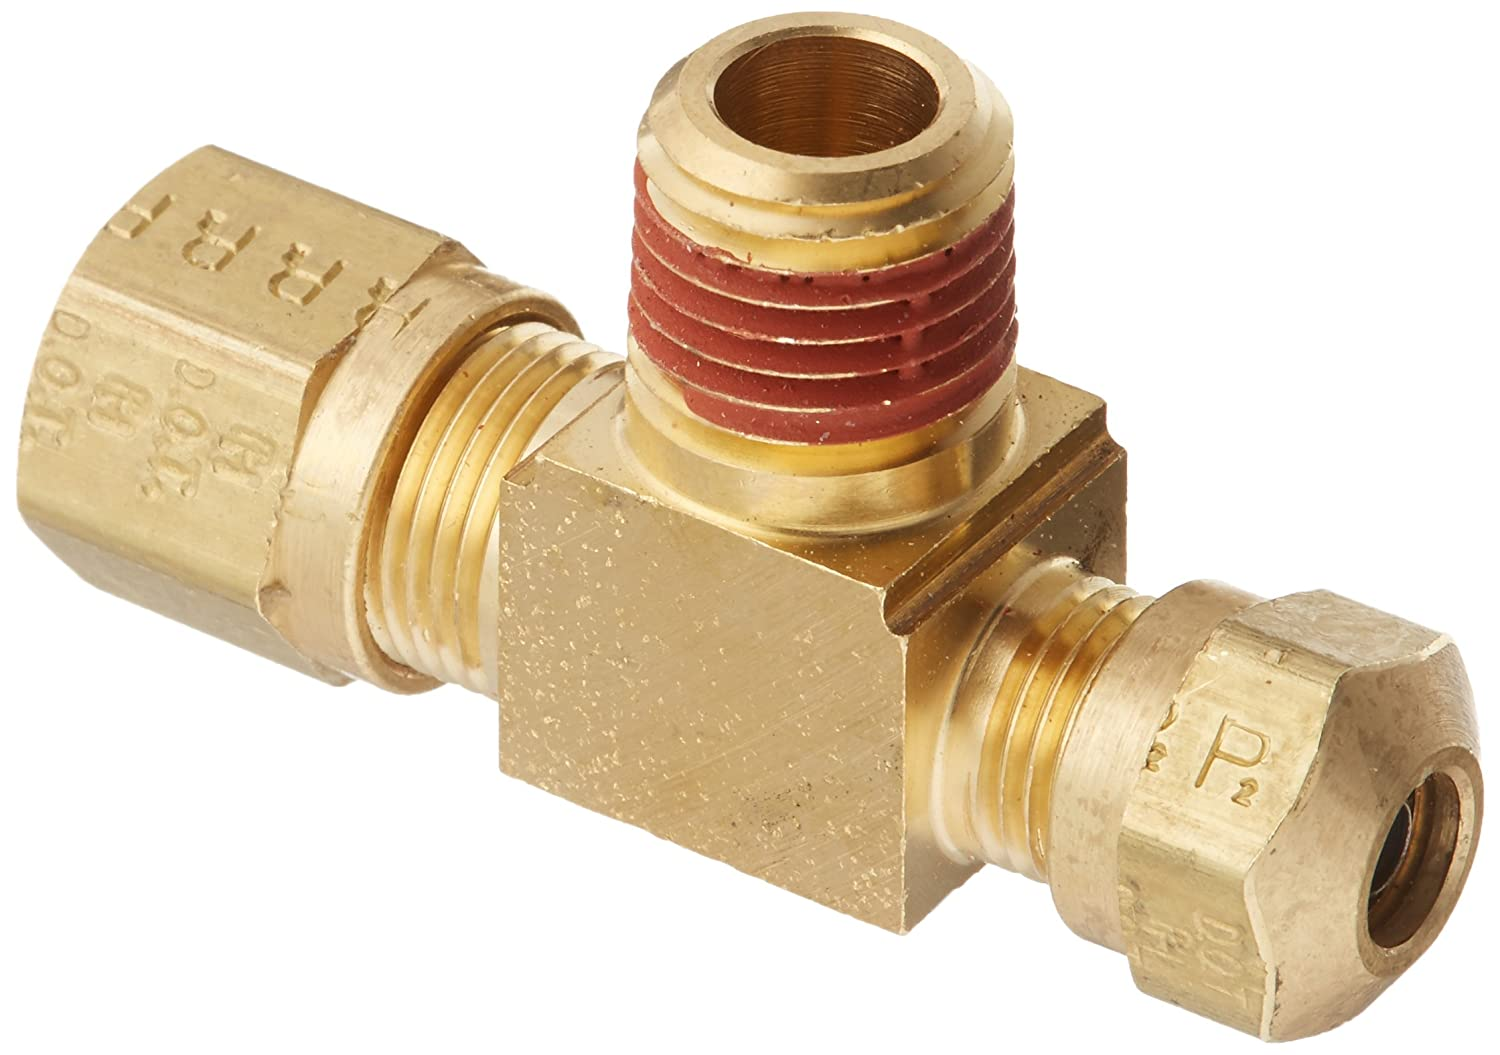 Parker Hannifin VS272NTA-8-6 Brass Air Brake-NTA Male Branch Tee Fitting 1//2 Compression Tube x 3//8 Male Thread